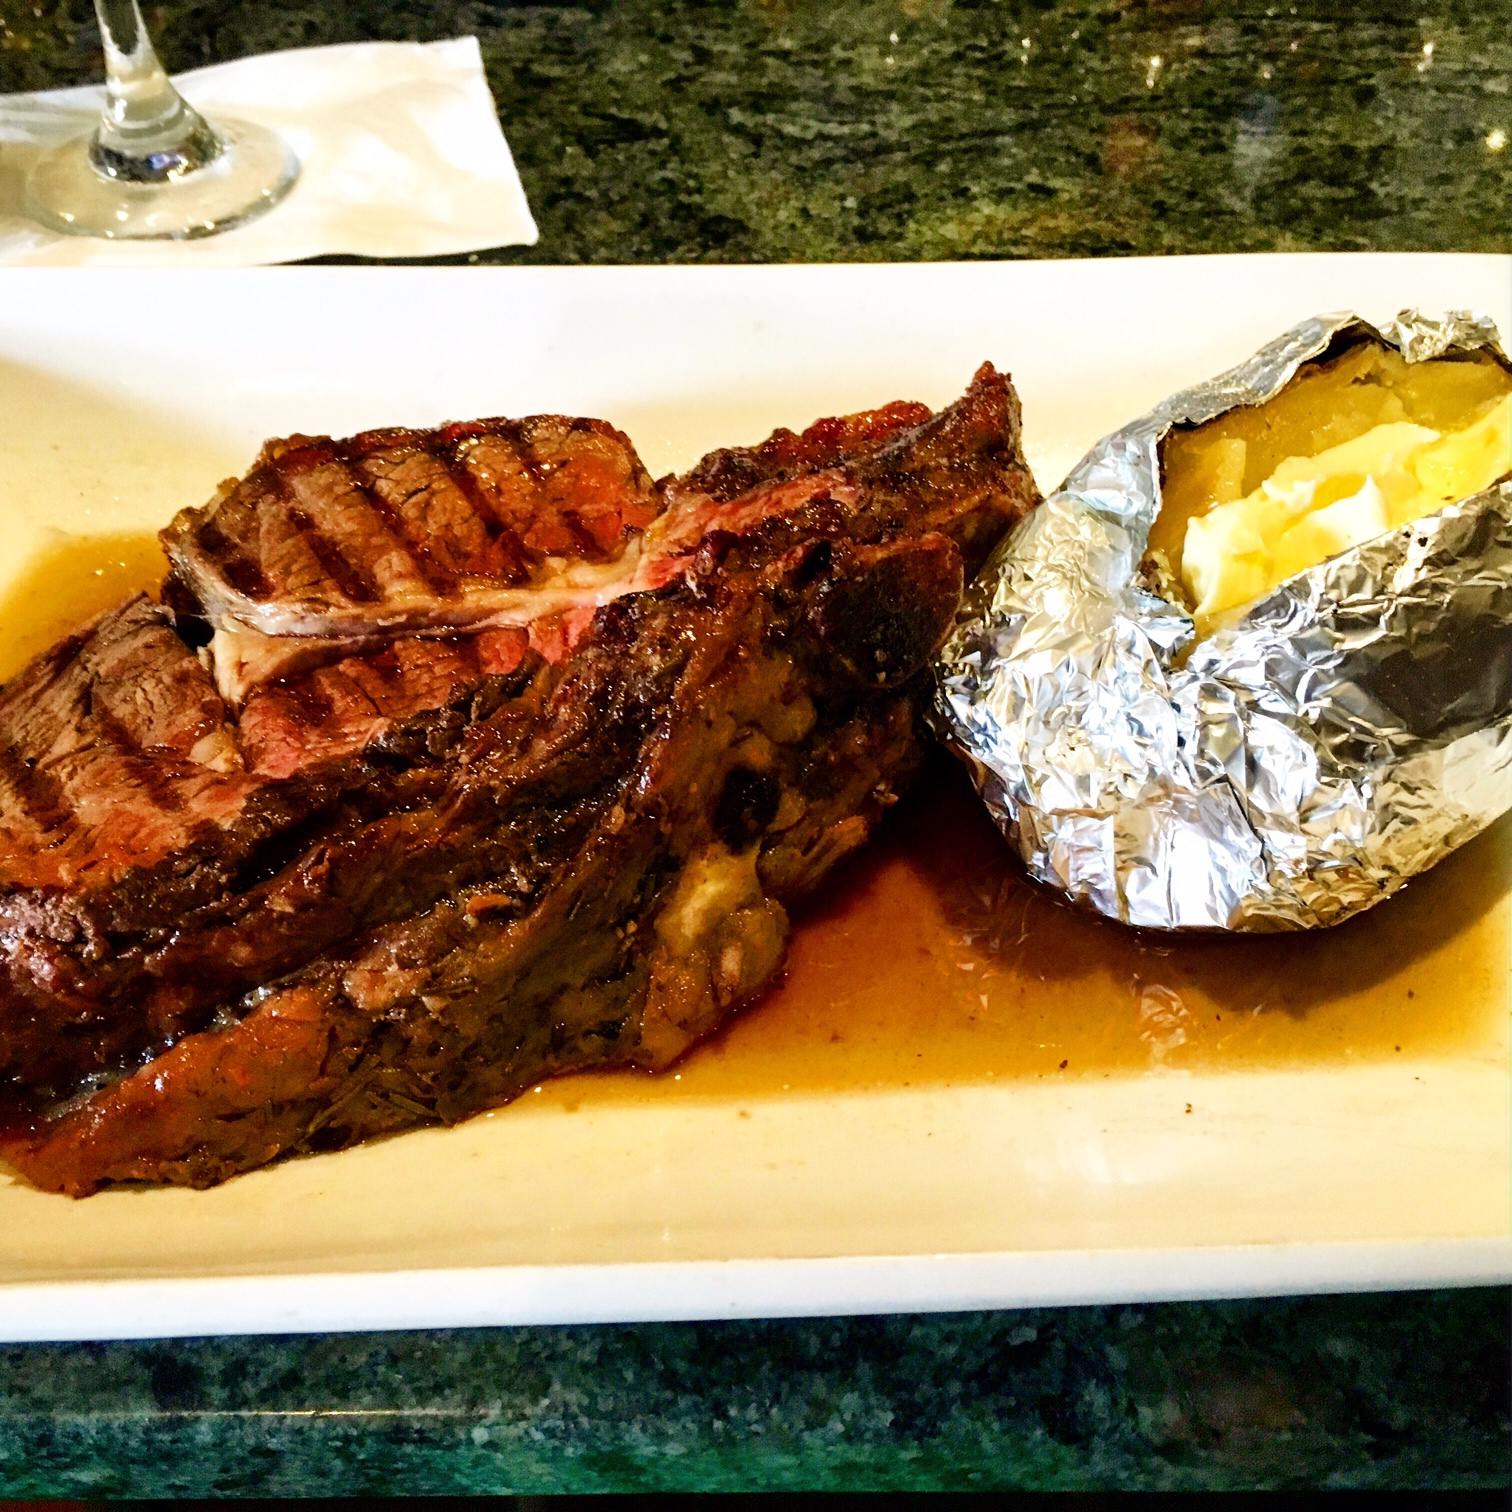 Via Appia, Condado, Rib Eye, Steak, Potato, Steak House, San Juan, Puerto Rico, Parrilla, Grilled, Carnes, Papa, Asada, Condado, Ashford, Avenue, Food, Italian Food, Puerto Rican Food, Restaurant